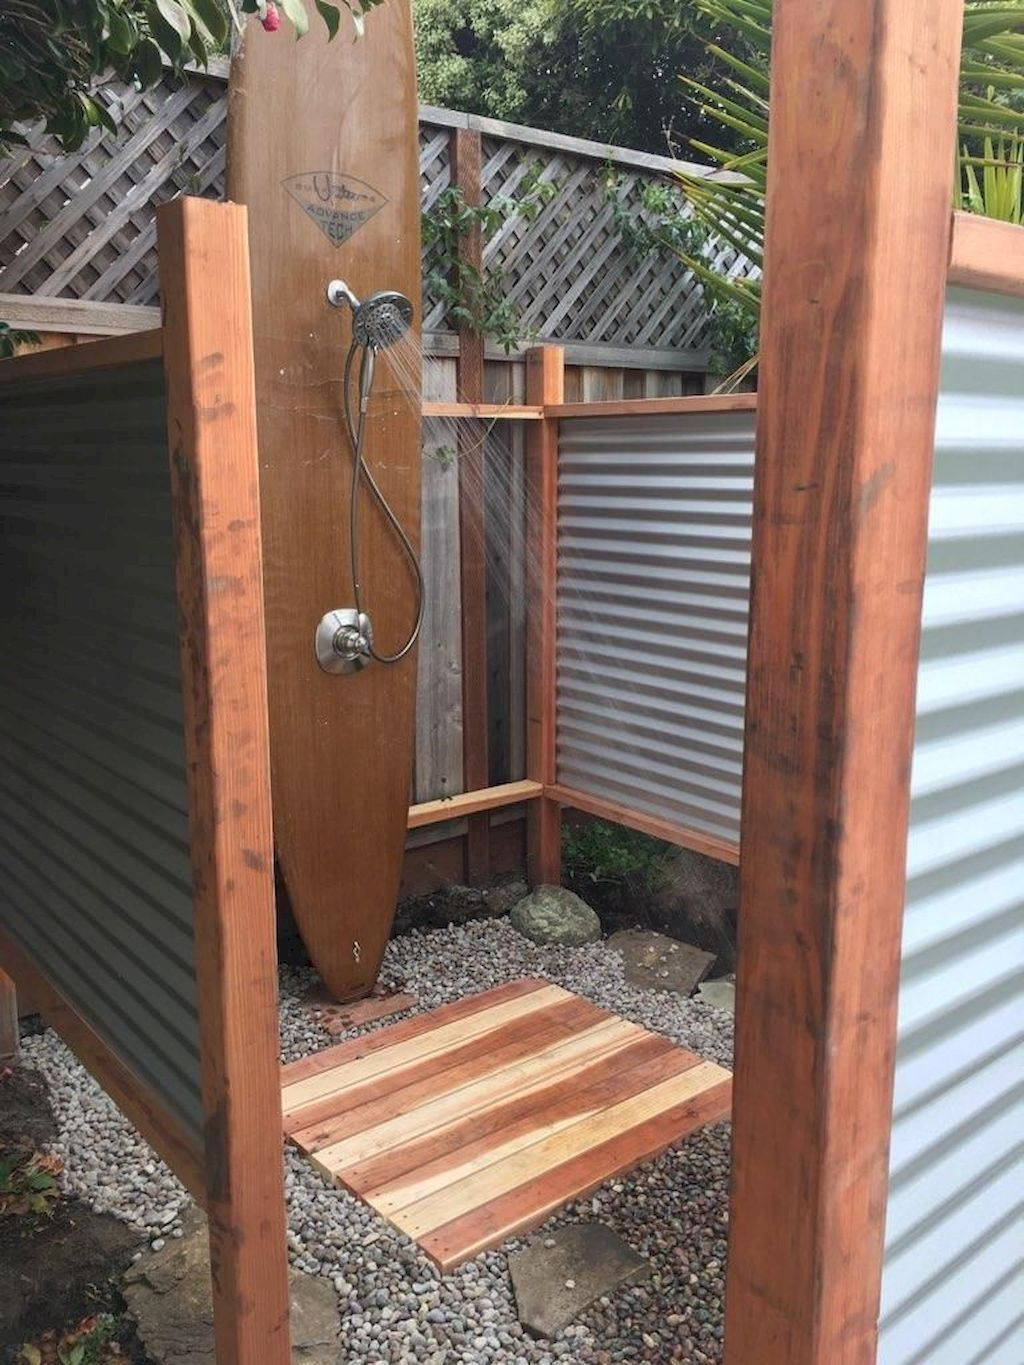 30 Affordable Outdoor Shower Ideas To Maximum Summer Vibes Modern Design In 2020 Outdoor Toilet Outside Showers Outdoor Bathroom Design